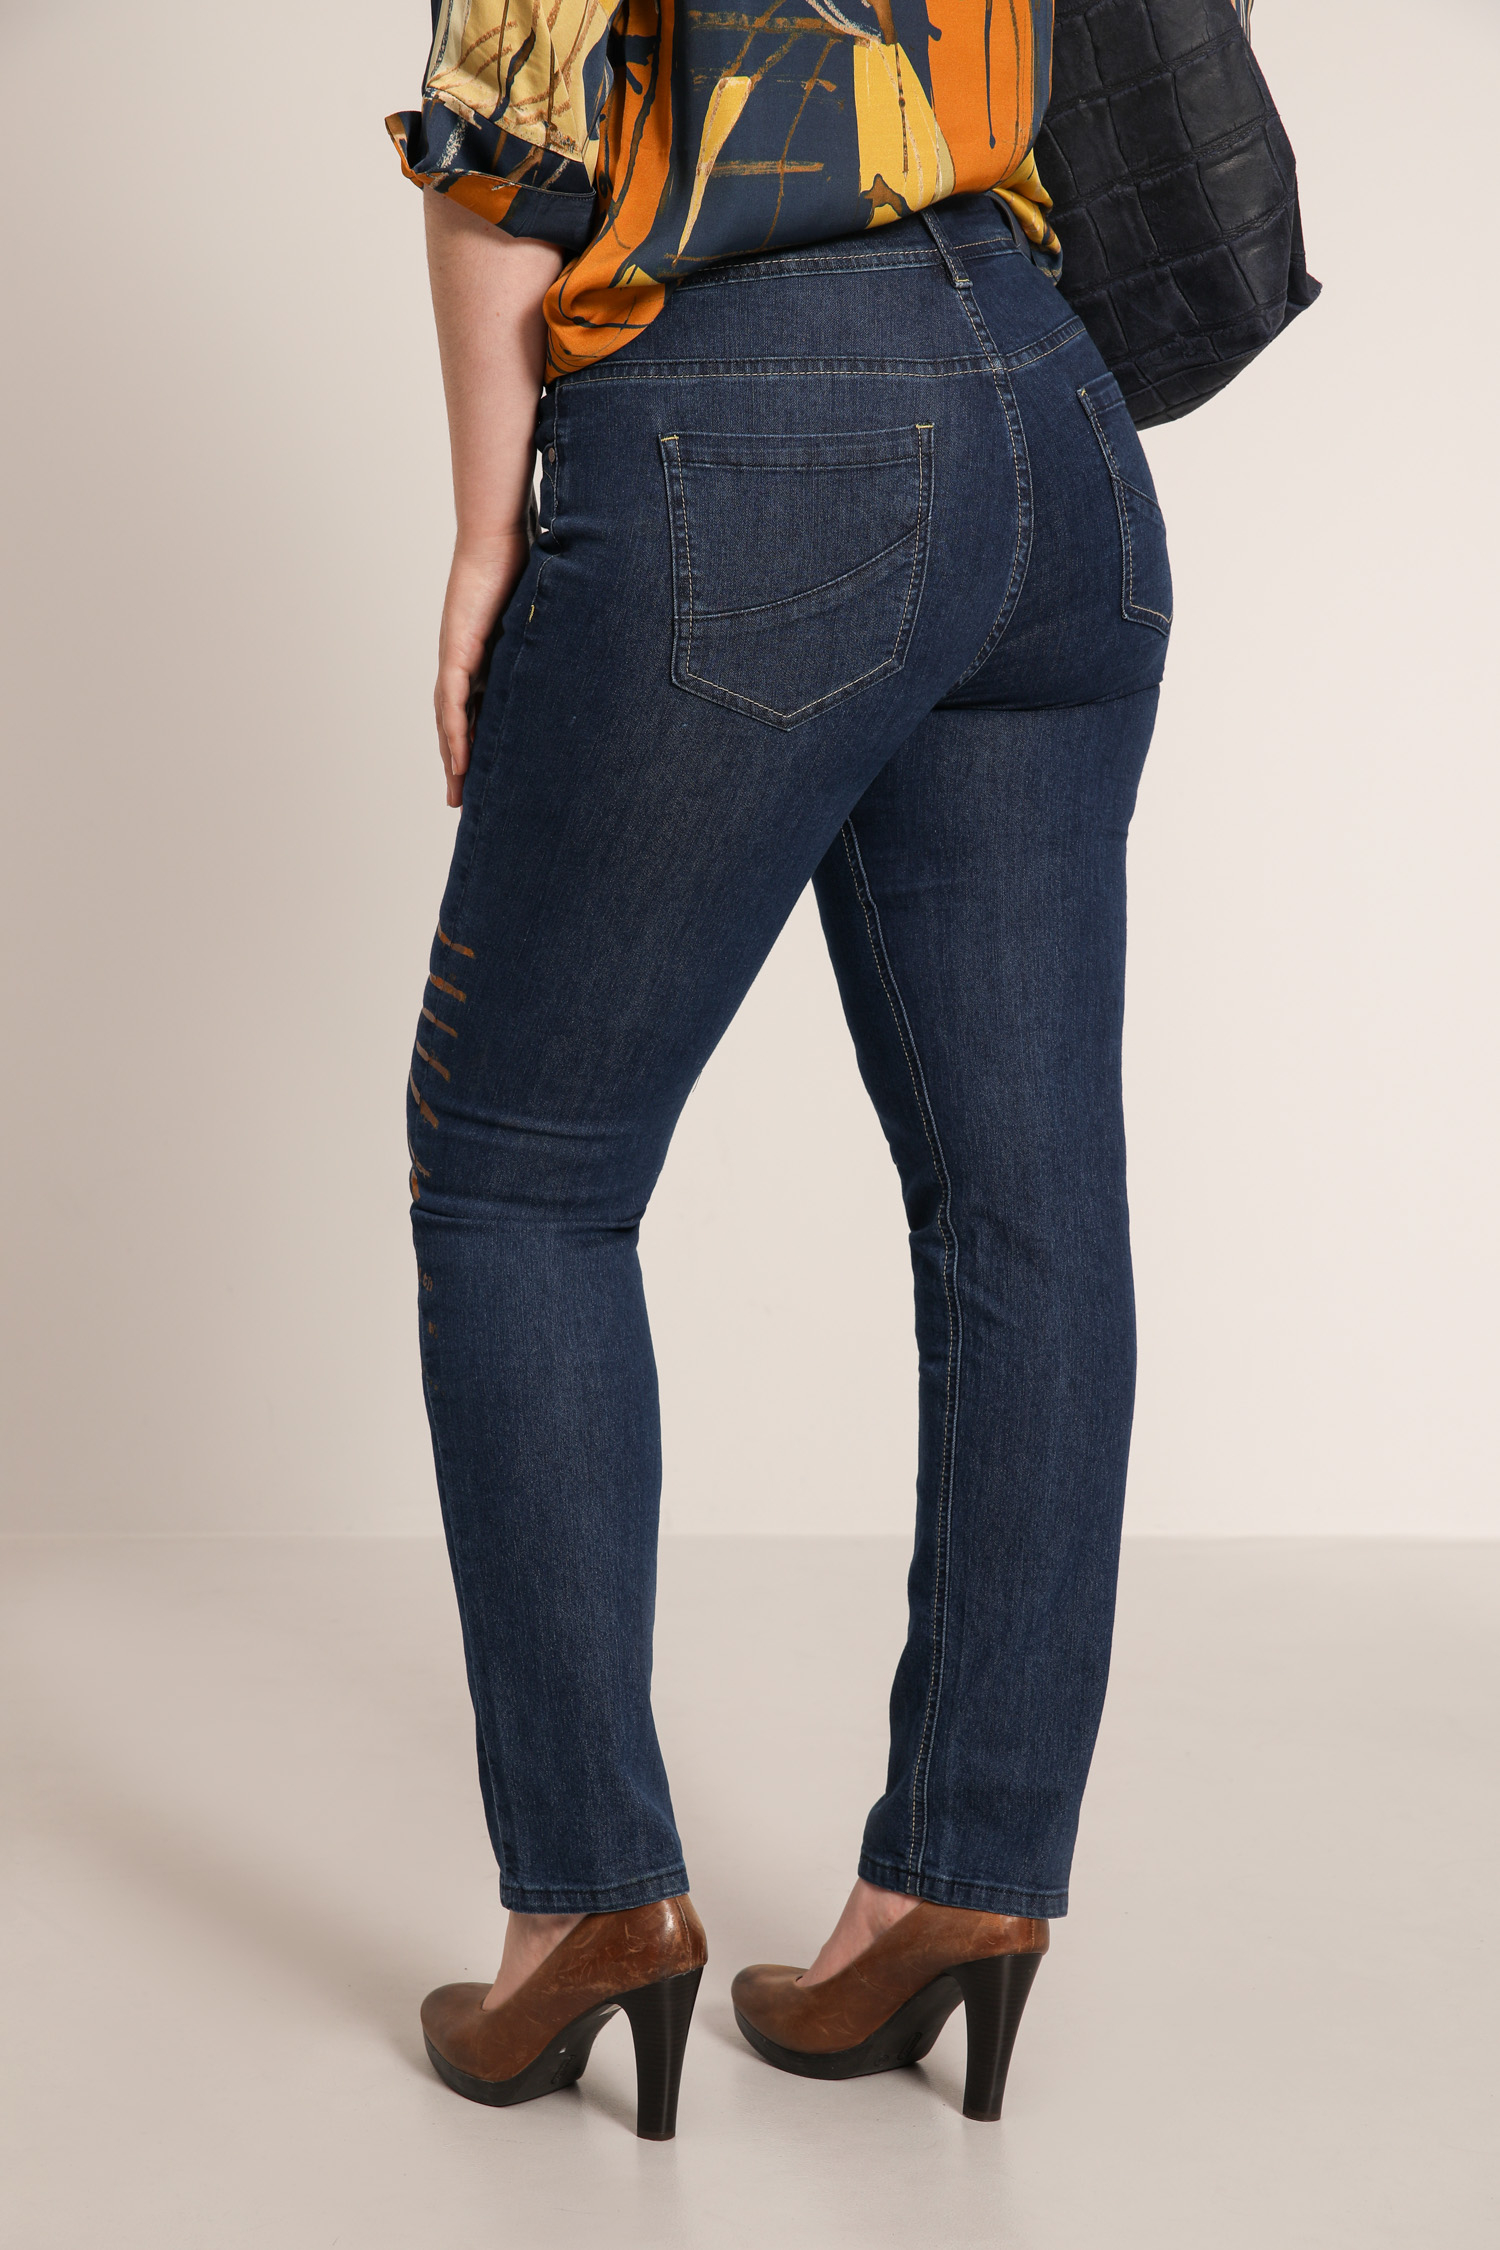 Jeans with screen printing